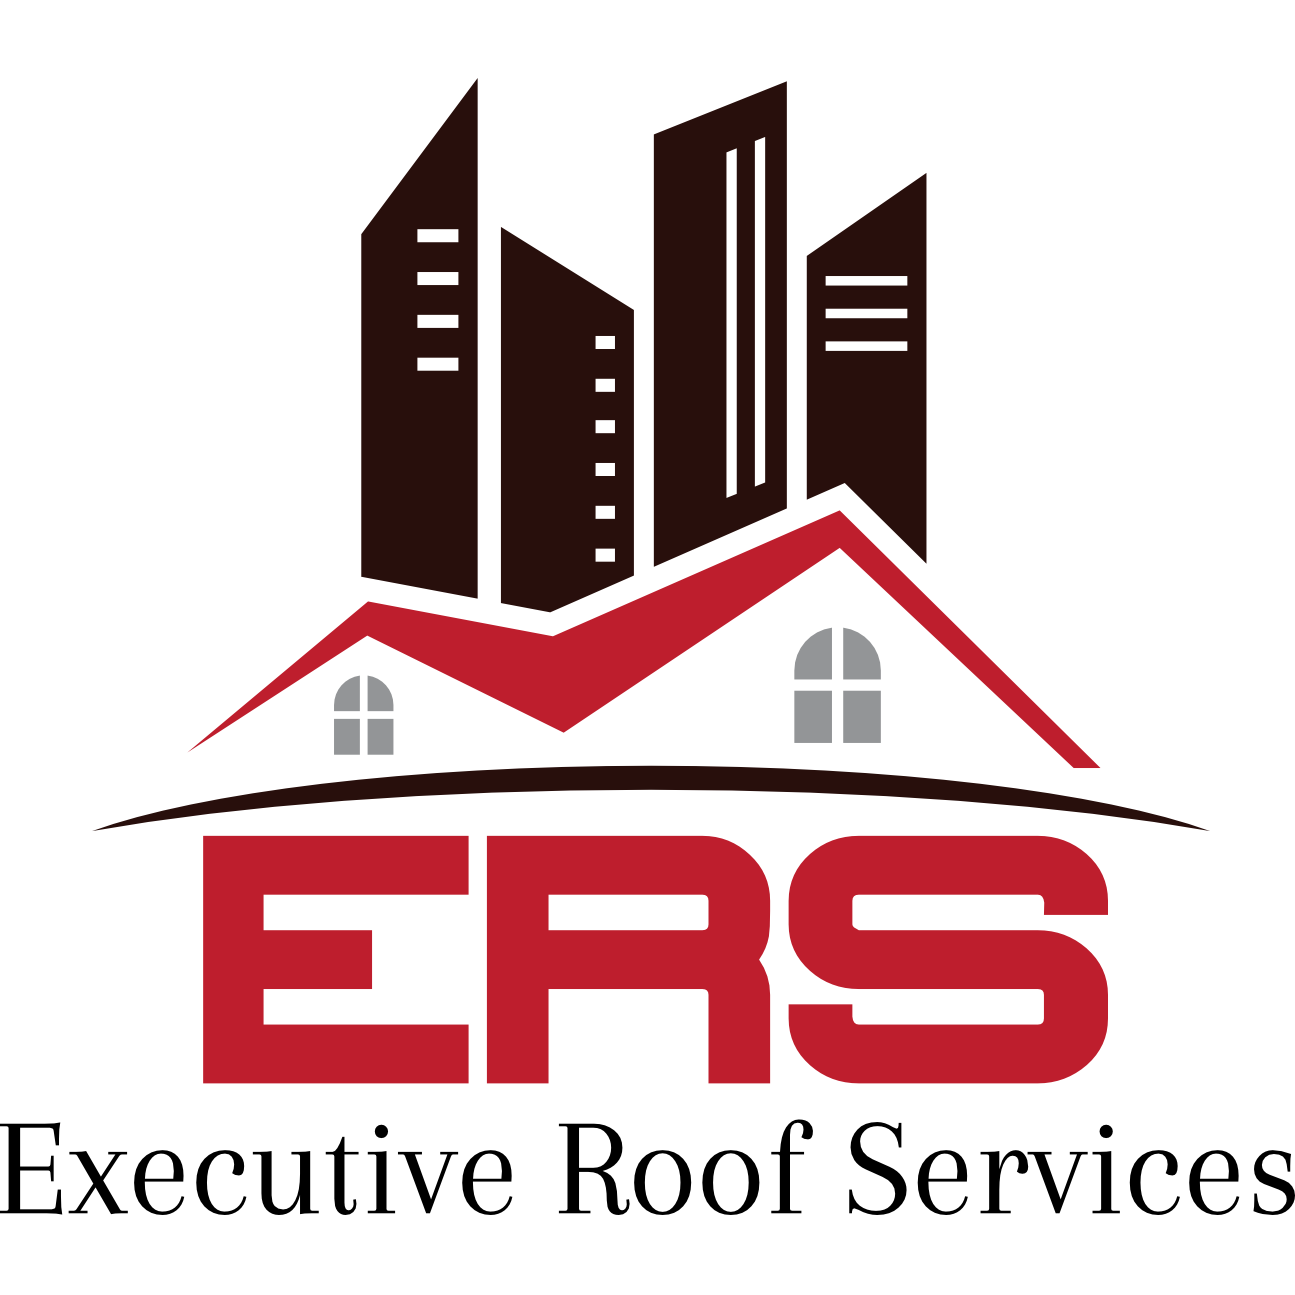 Executive Roof Services